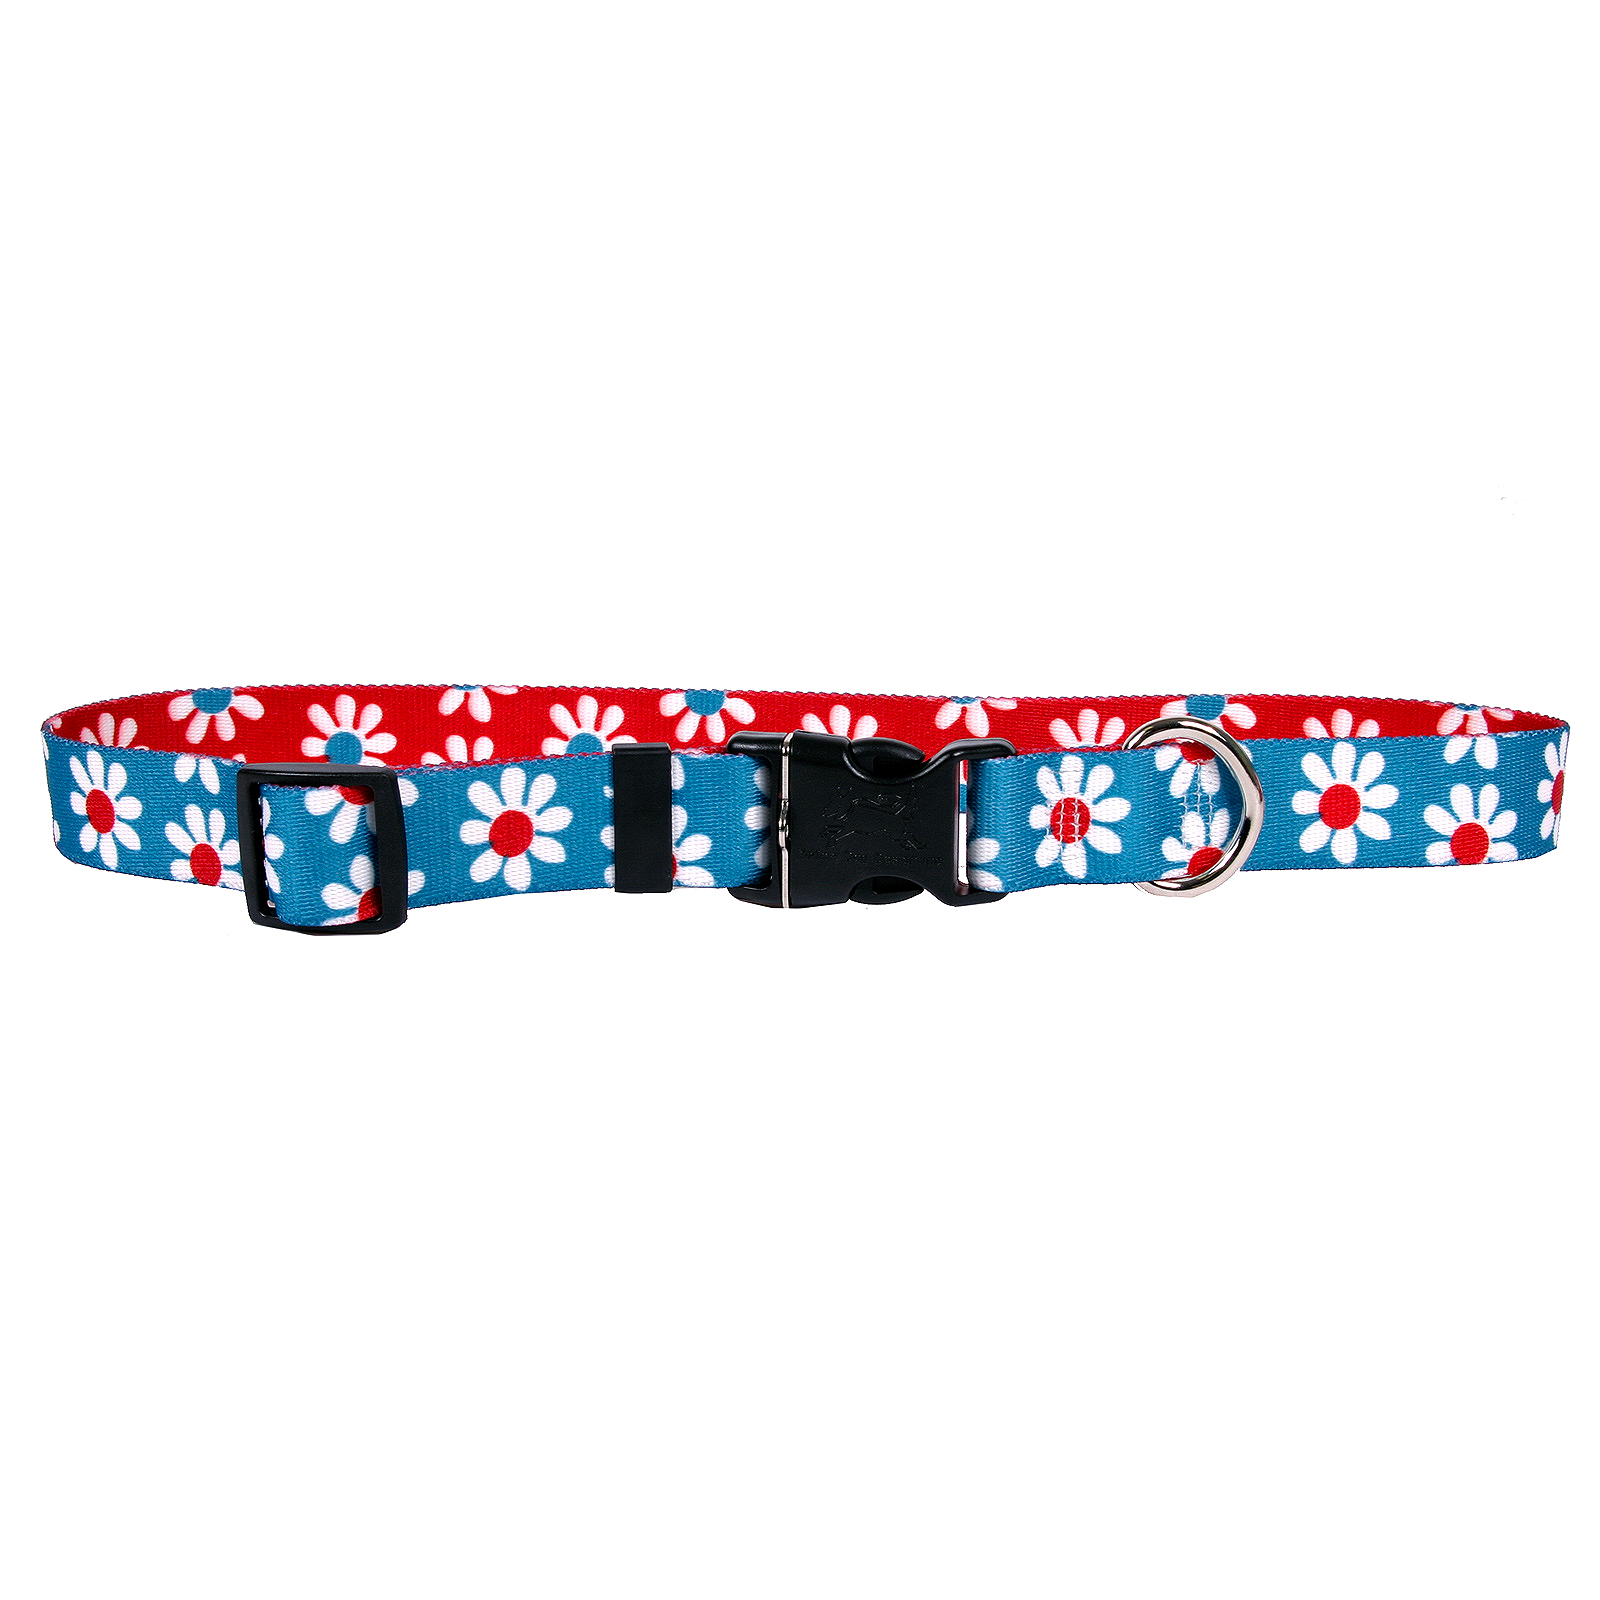 Teal & Red Daisy Standard Collar